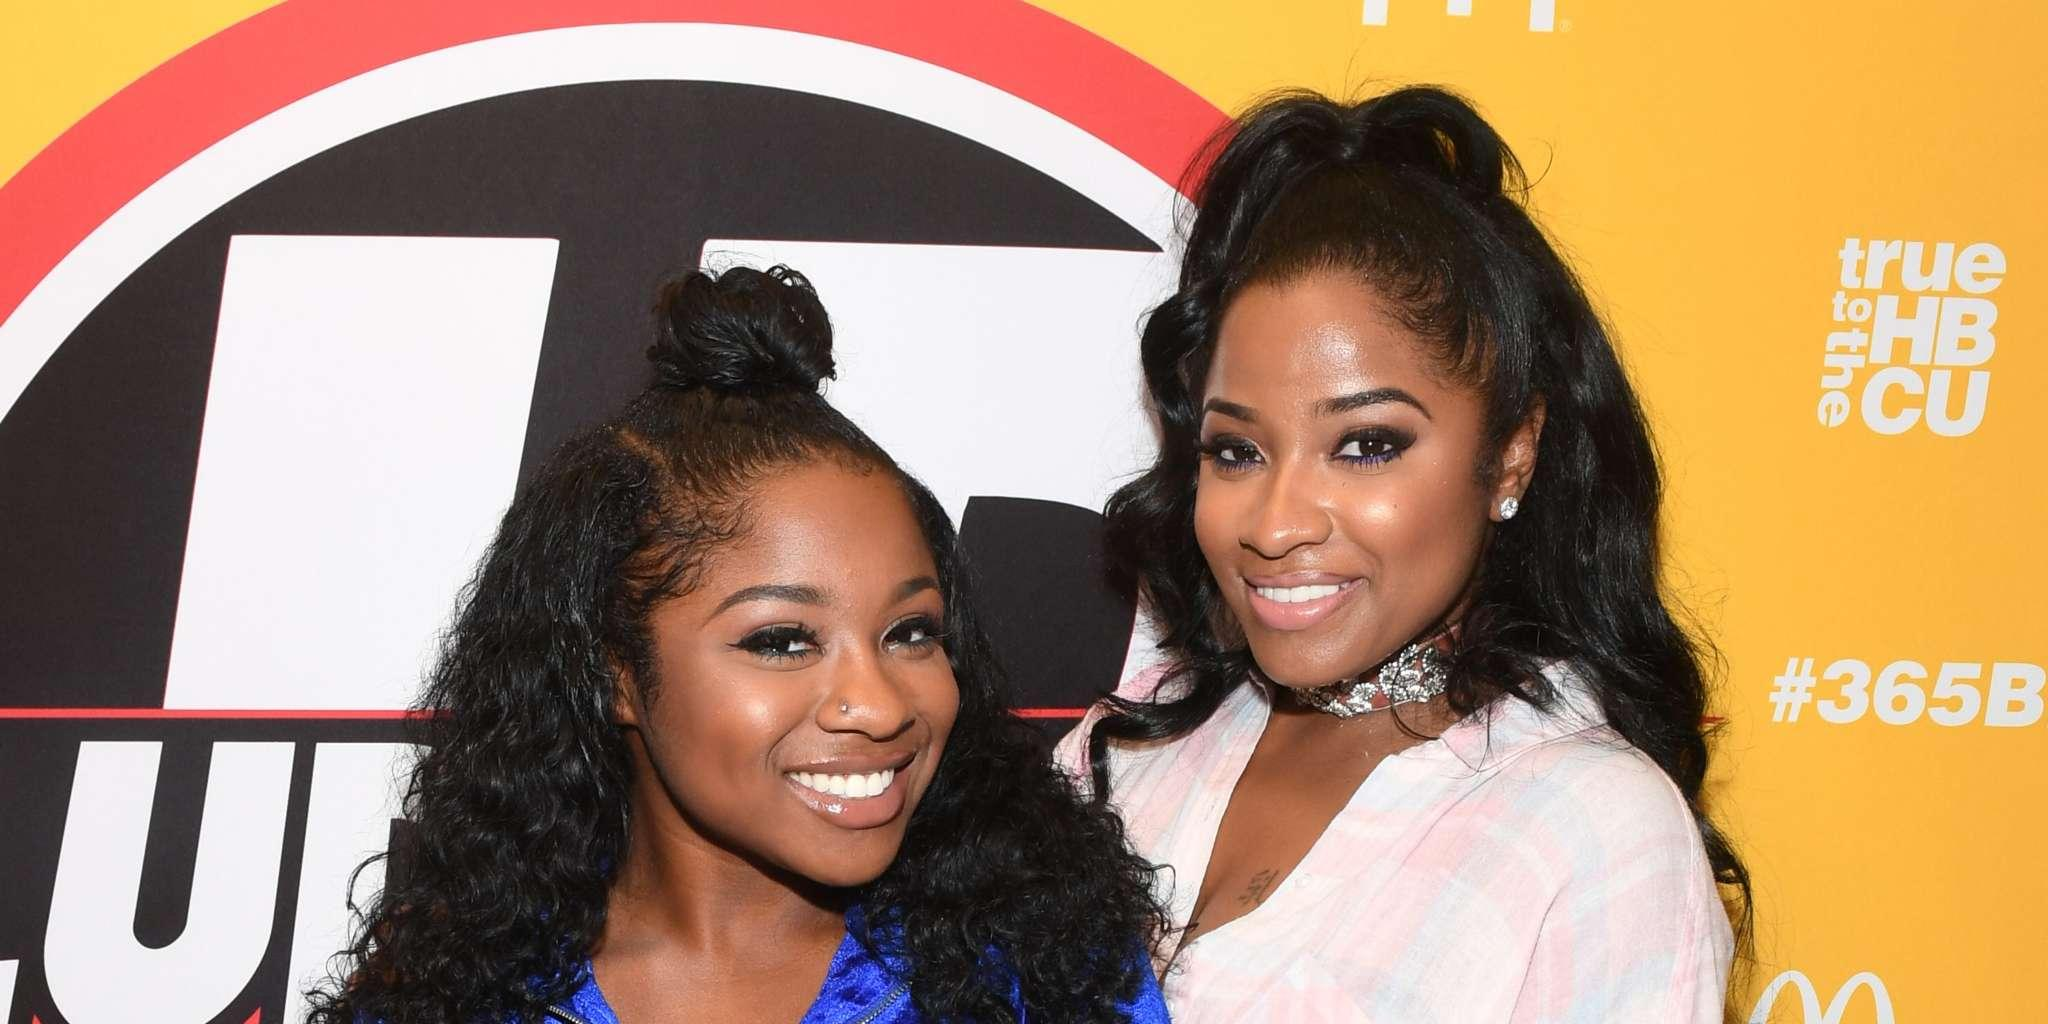 Toys Johnson Is Twinning With Her Daughter, Reginae Carter In These New Photos